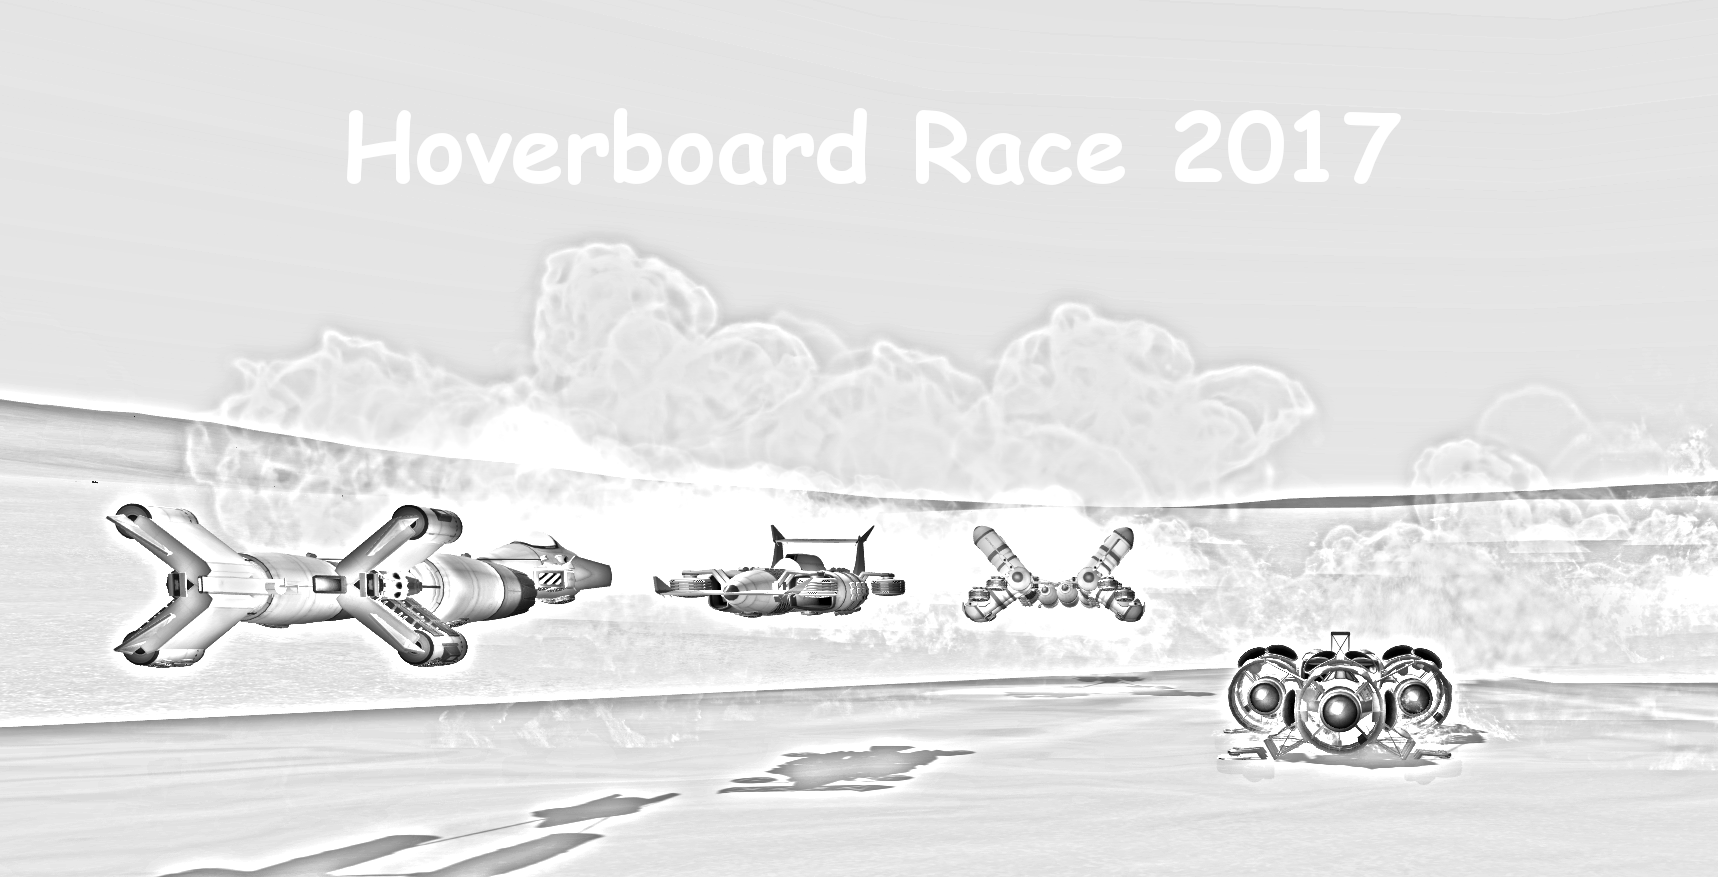 Hoverboard Race 2017